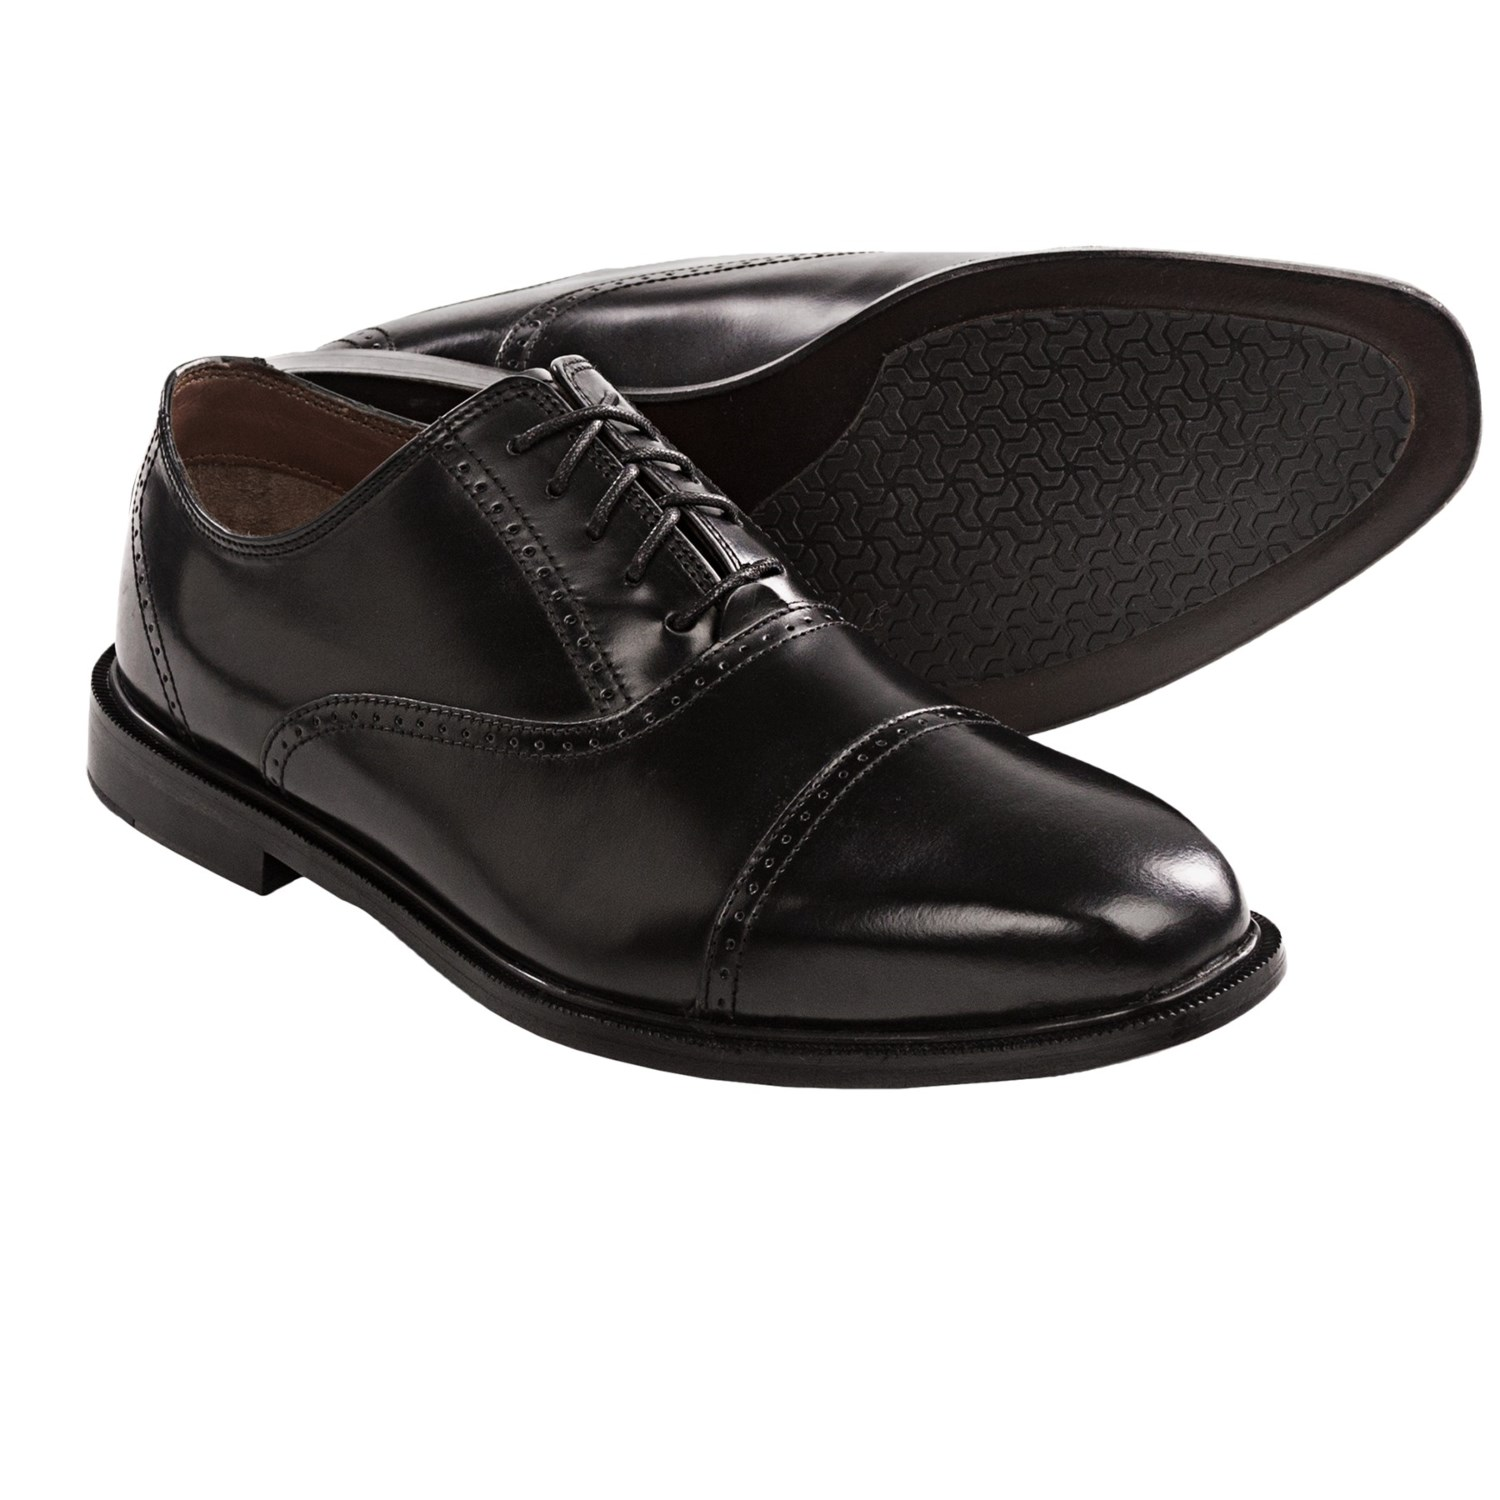 rockport fair oaks shoes for 7047t save 27